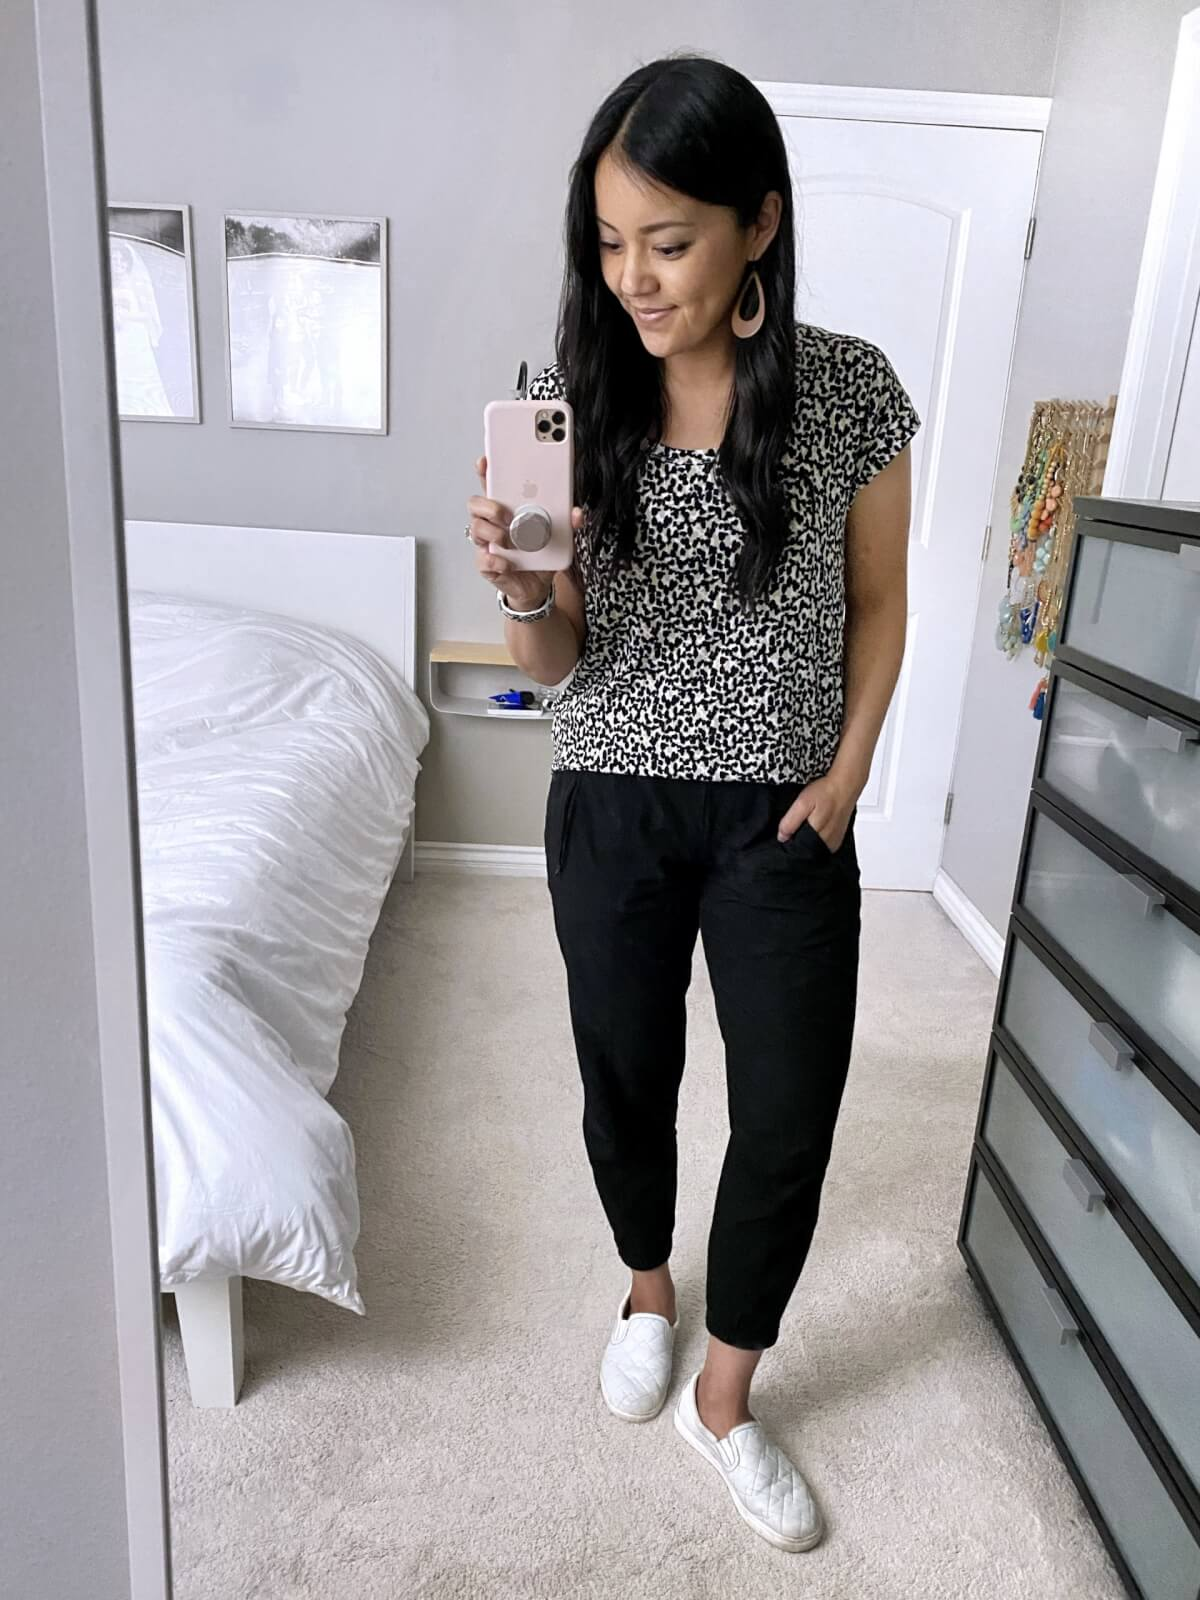 Summer Pants Casual Outfit: black white beige spotted tee + black joggers + tan earrings + white slip-on sneakers